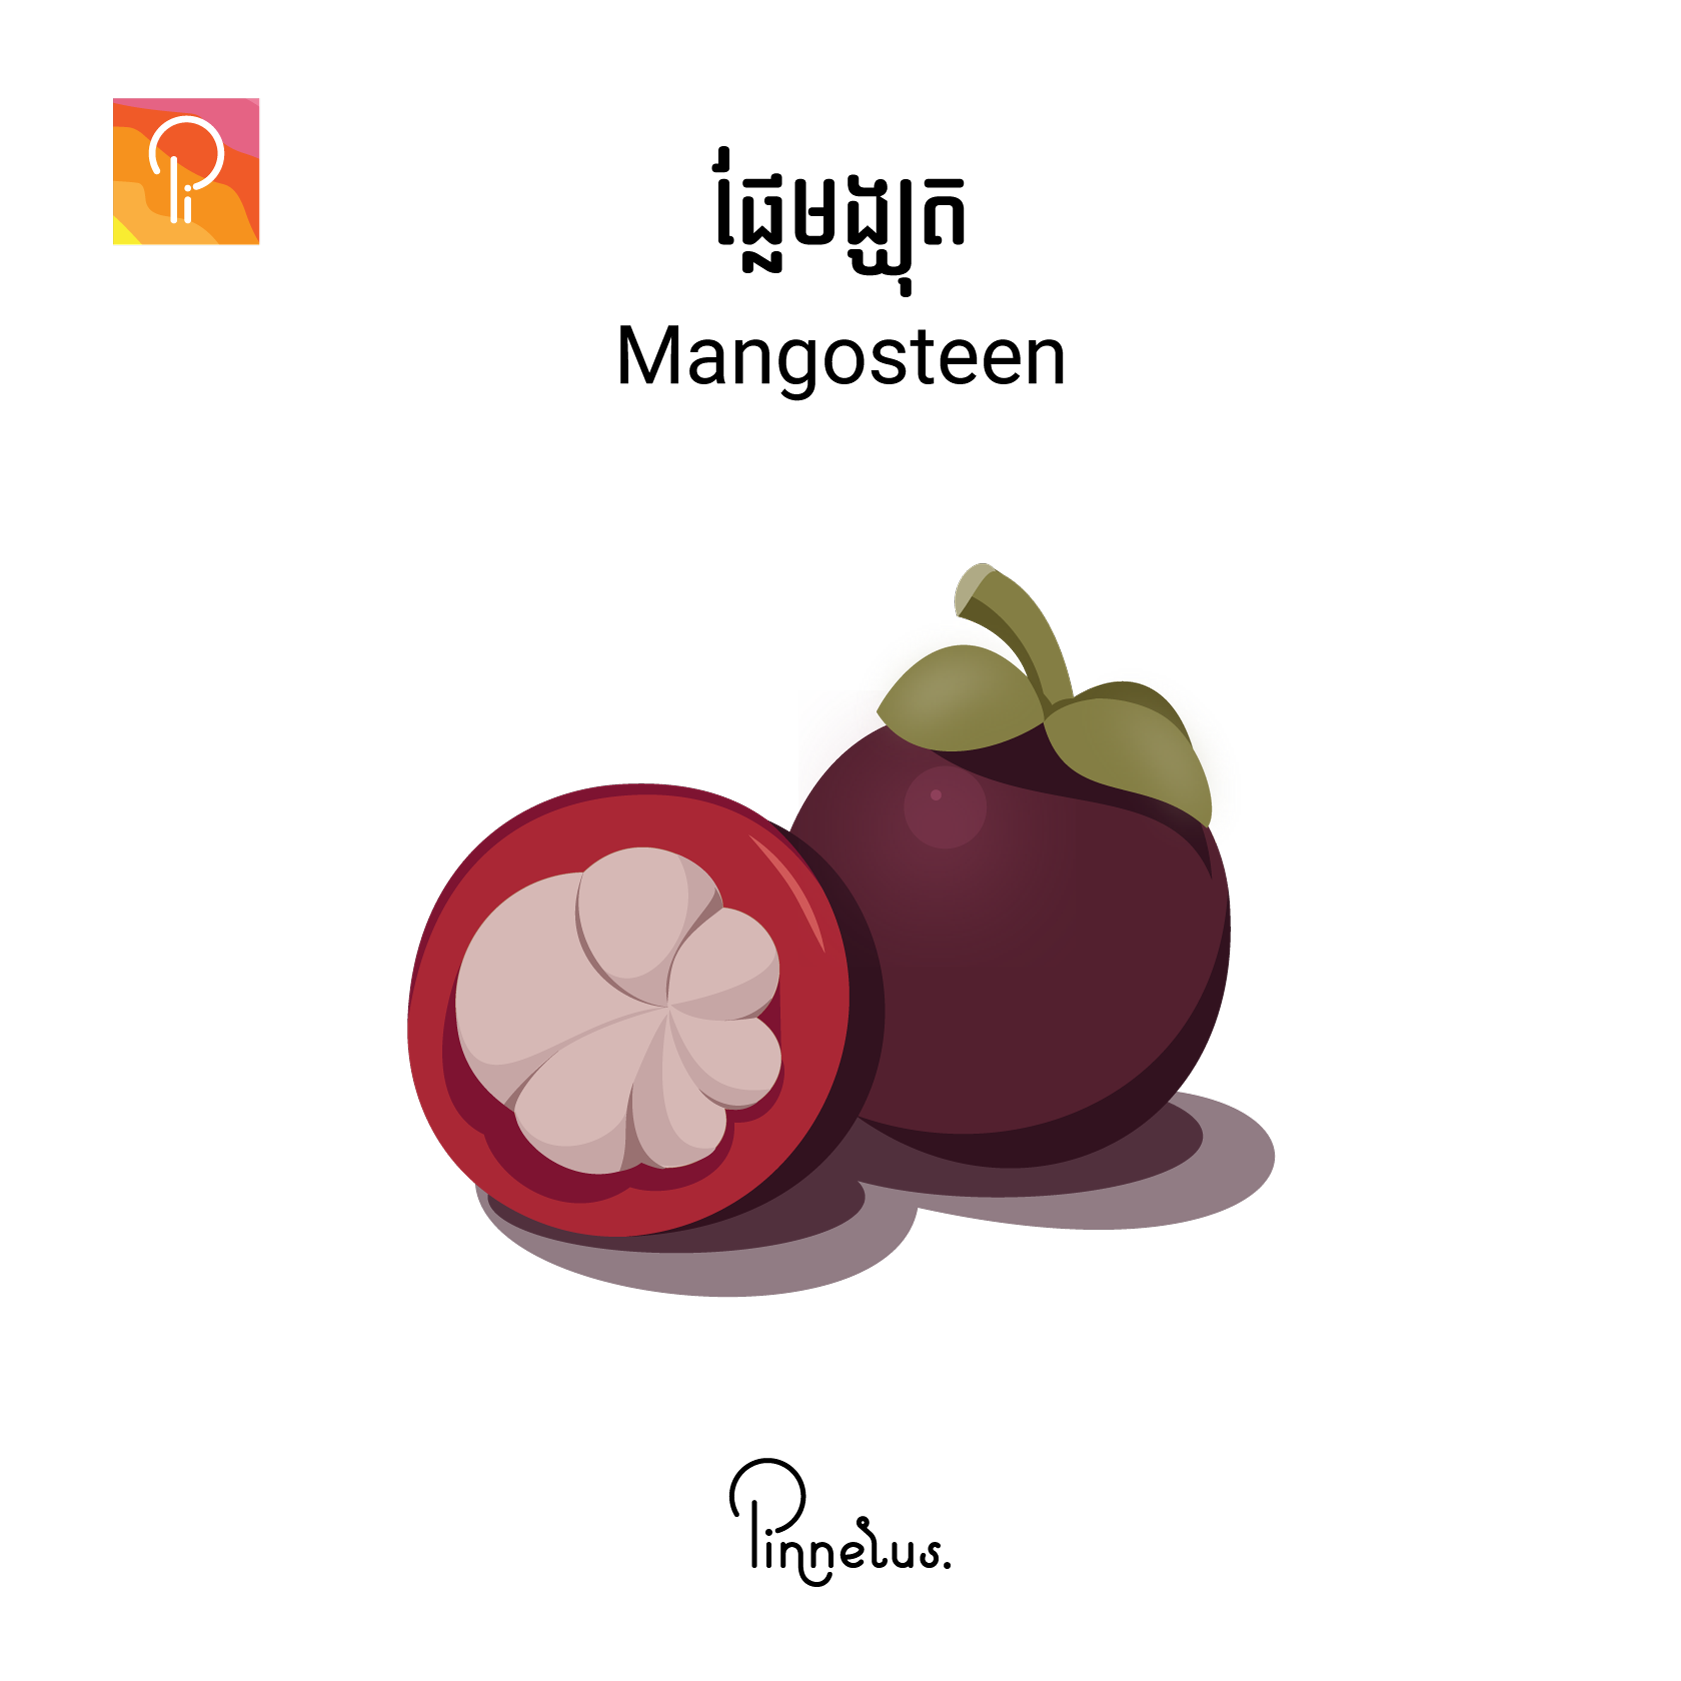 mangosteen - Mangosteen fruit square - Mangosteen